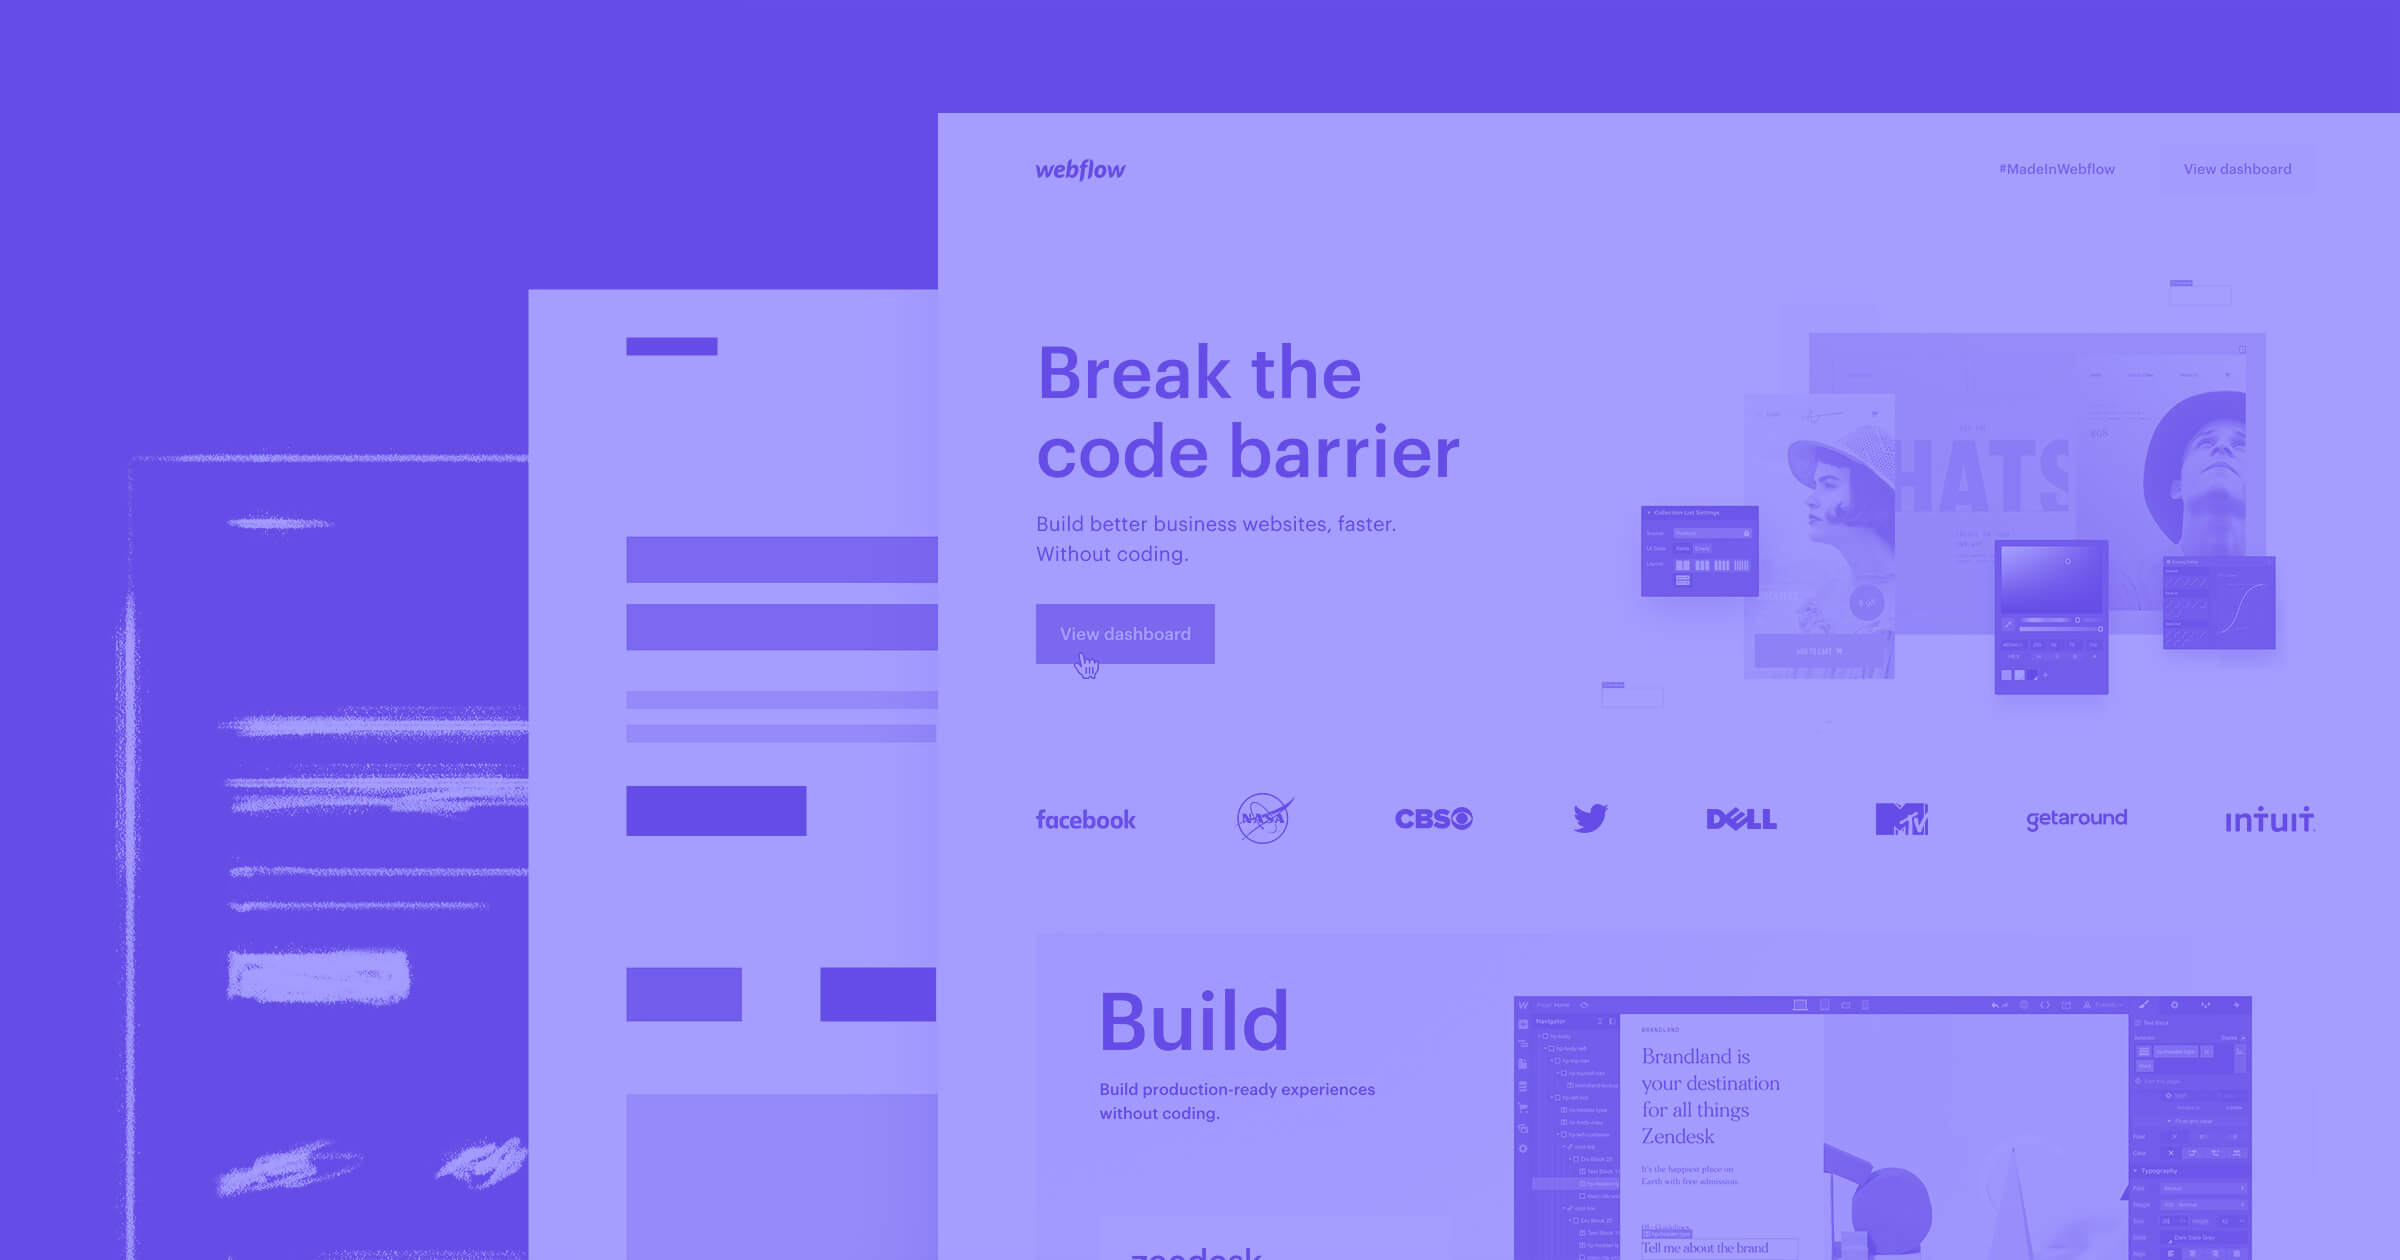 14 best prototyping tools for UI/UX designers